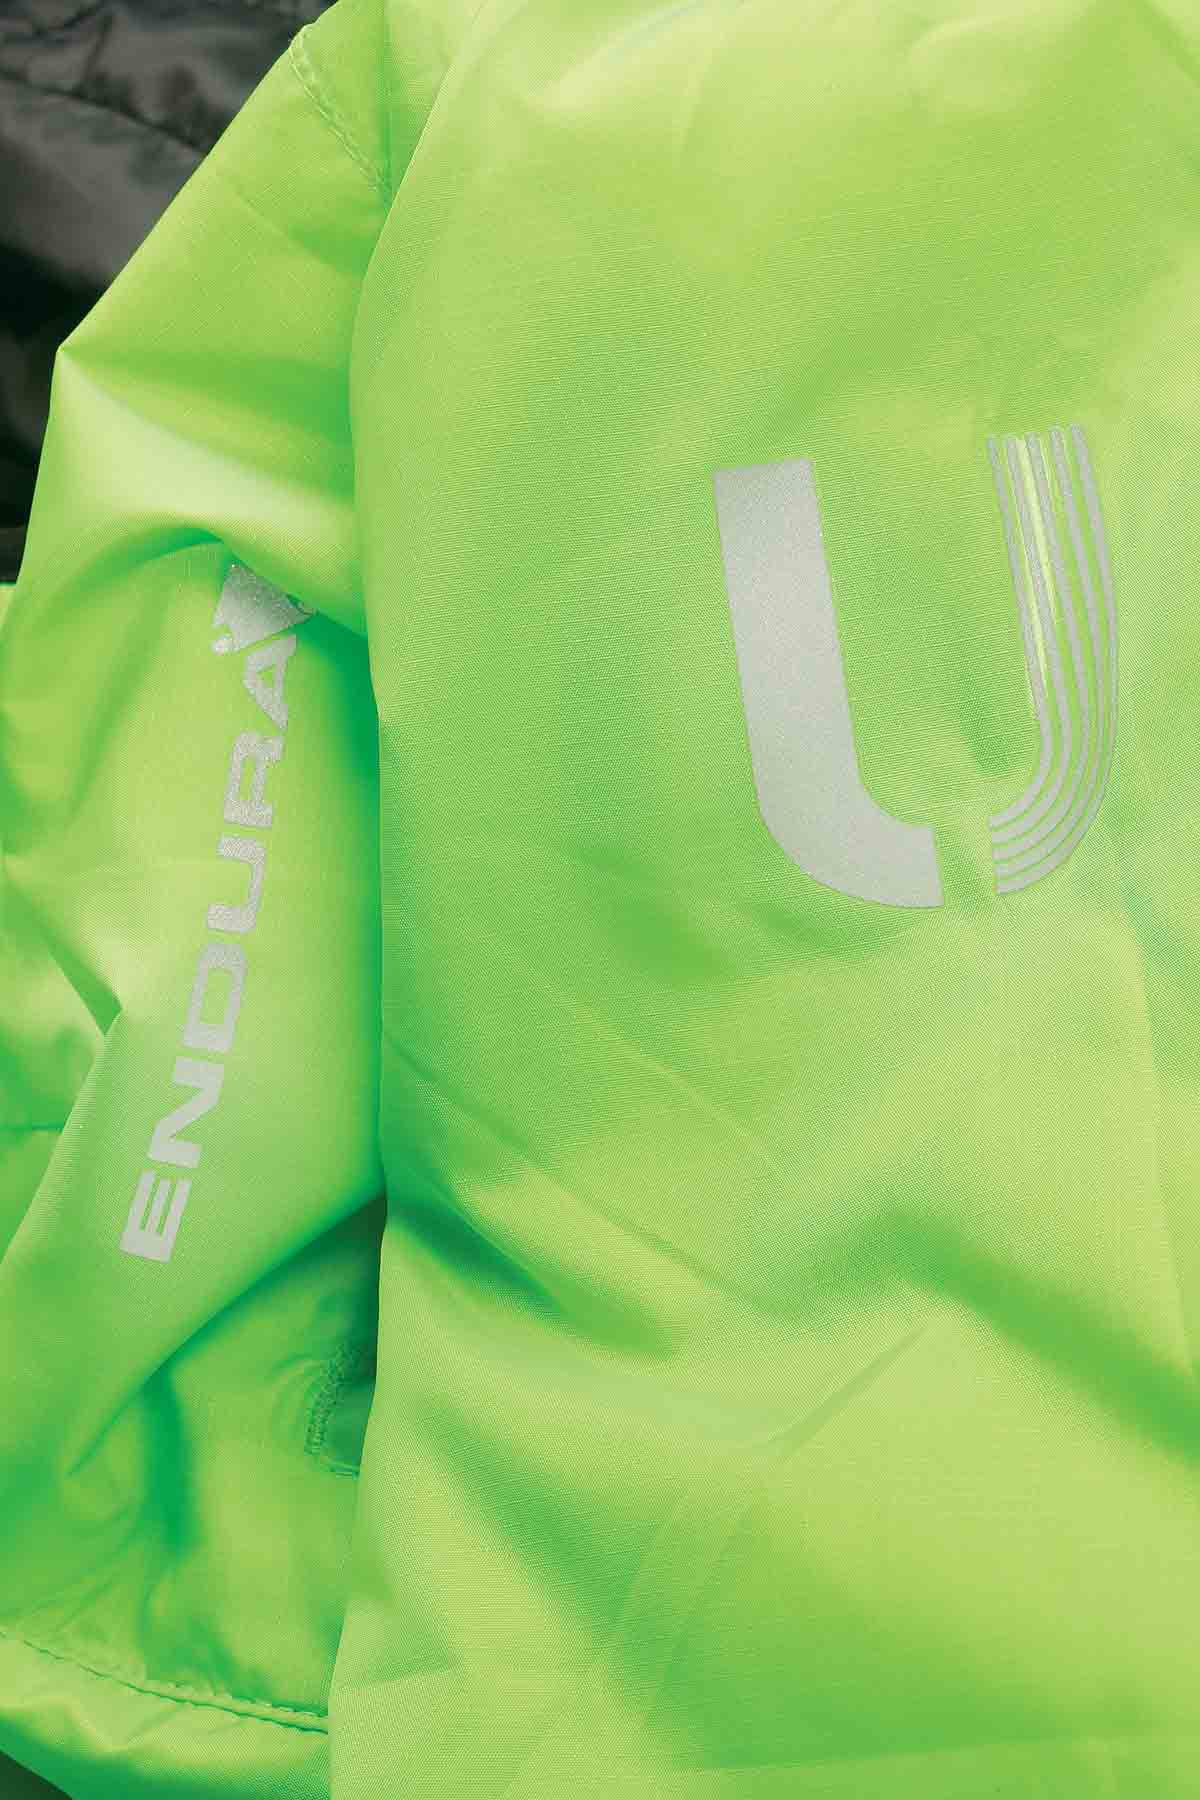 Highly reflective print details and logos